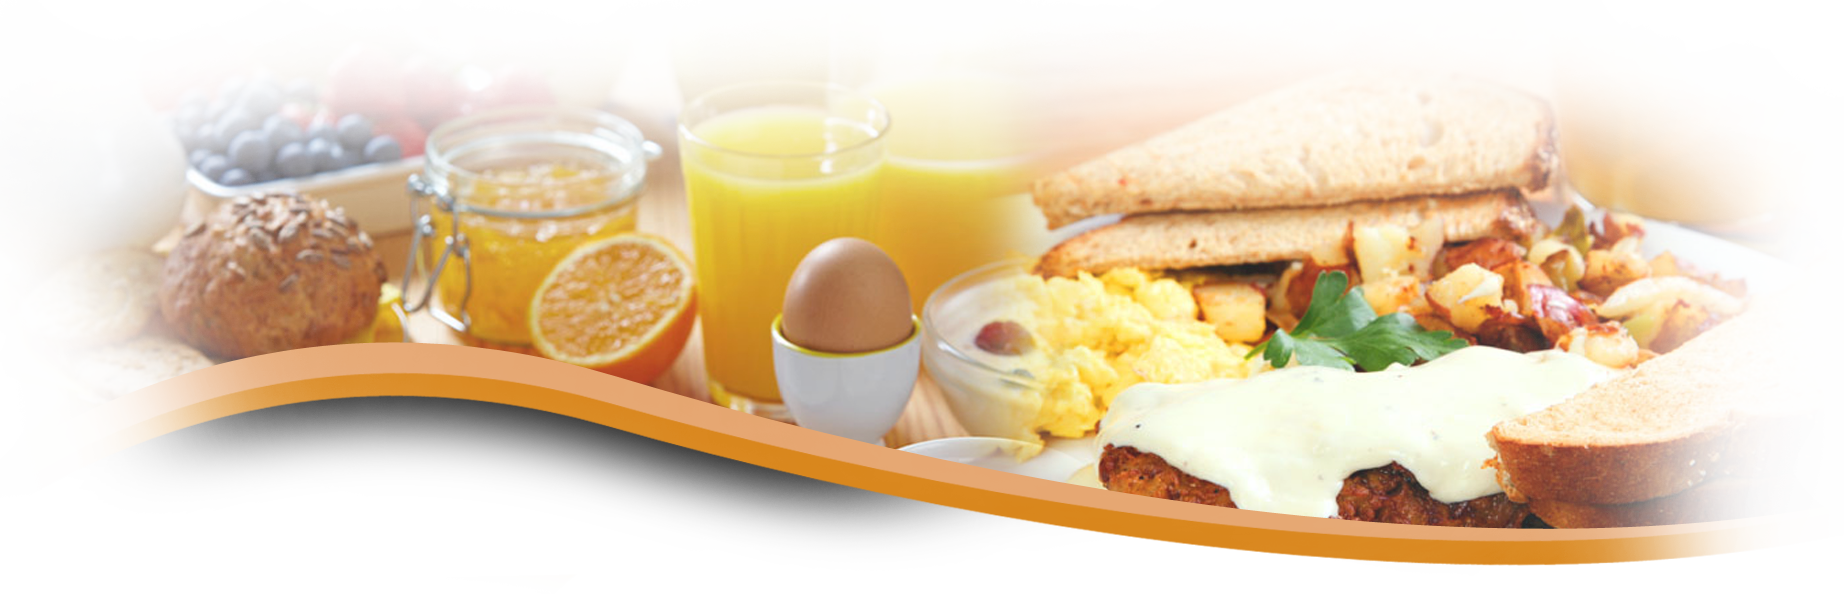 Breakfast Png Transparent Background